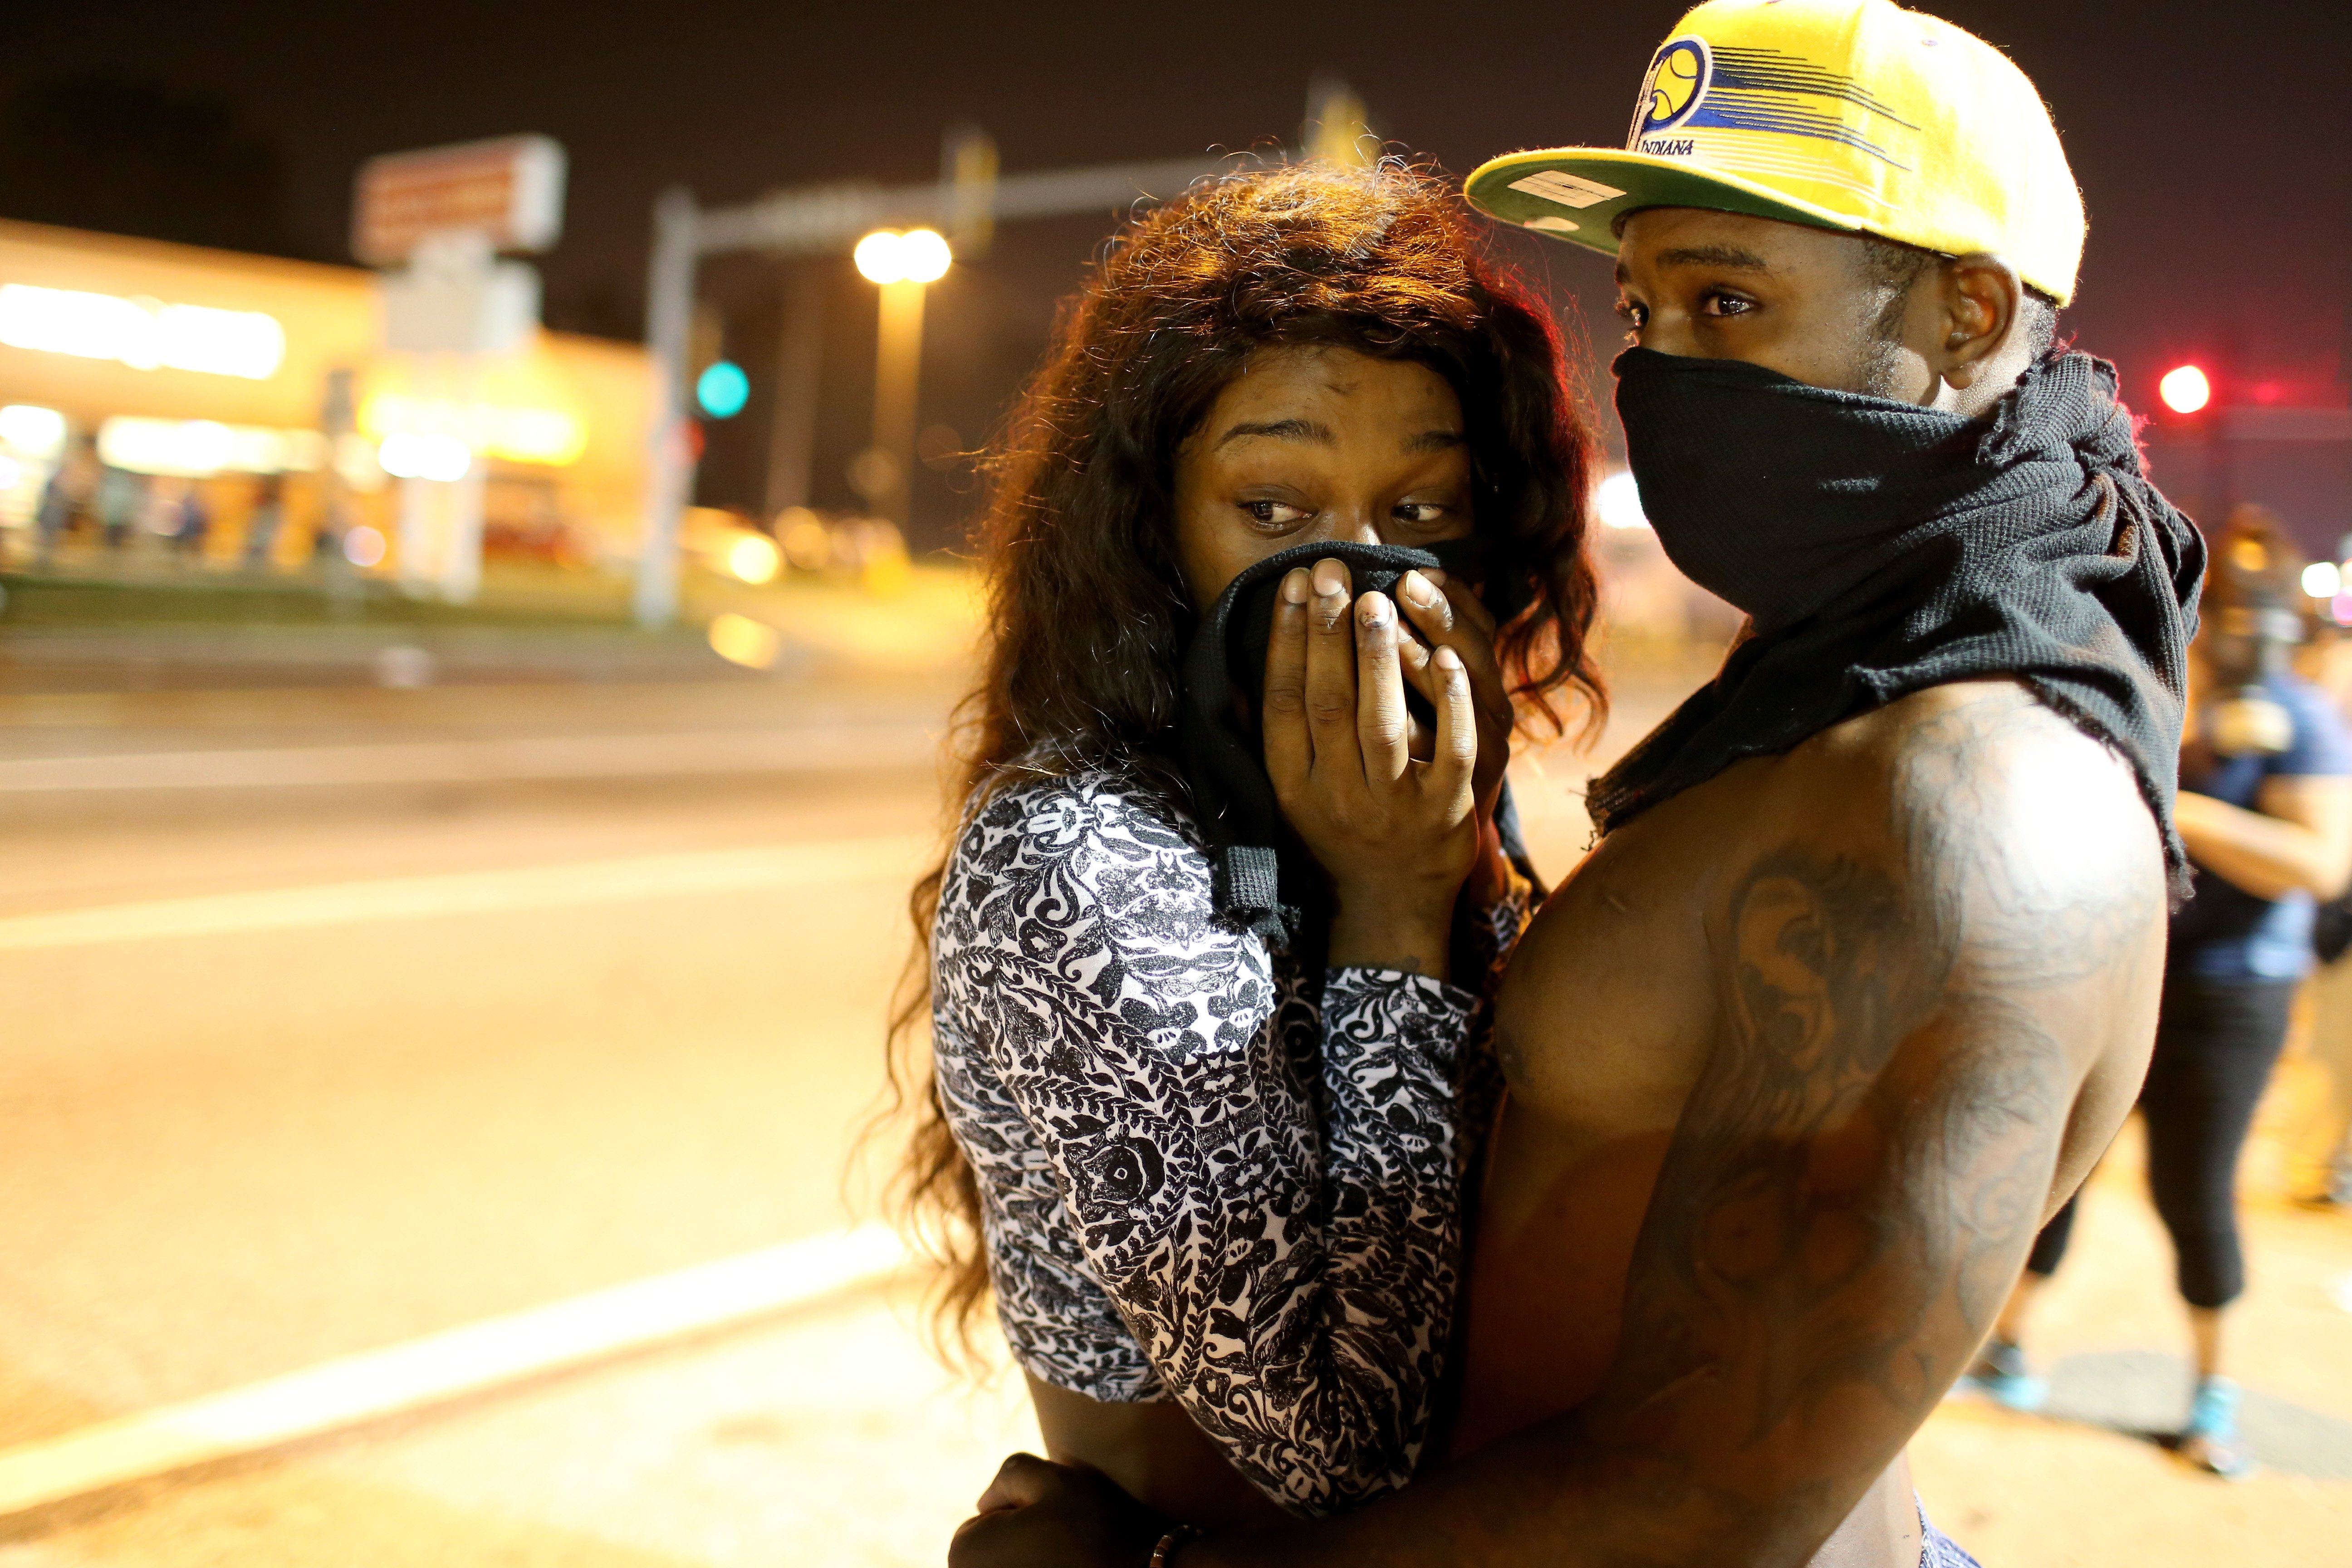 Demonstrators  cover their faces as tear gas fills the air as police fire the gas against an unruly crowd protesting the shooting death of Michael Brown in Ferguson, Mo. on Aug.18, 2014